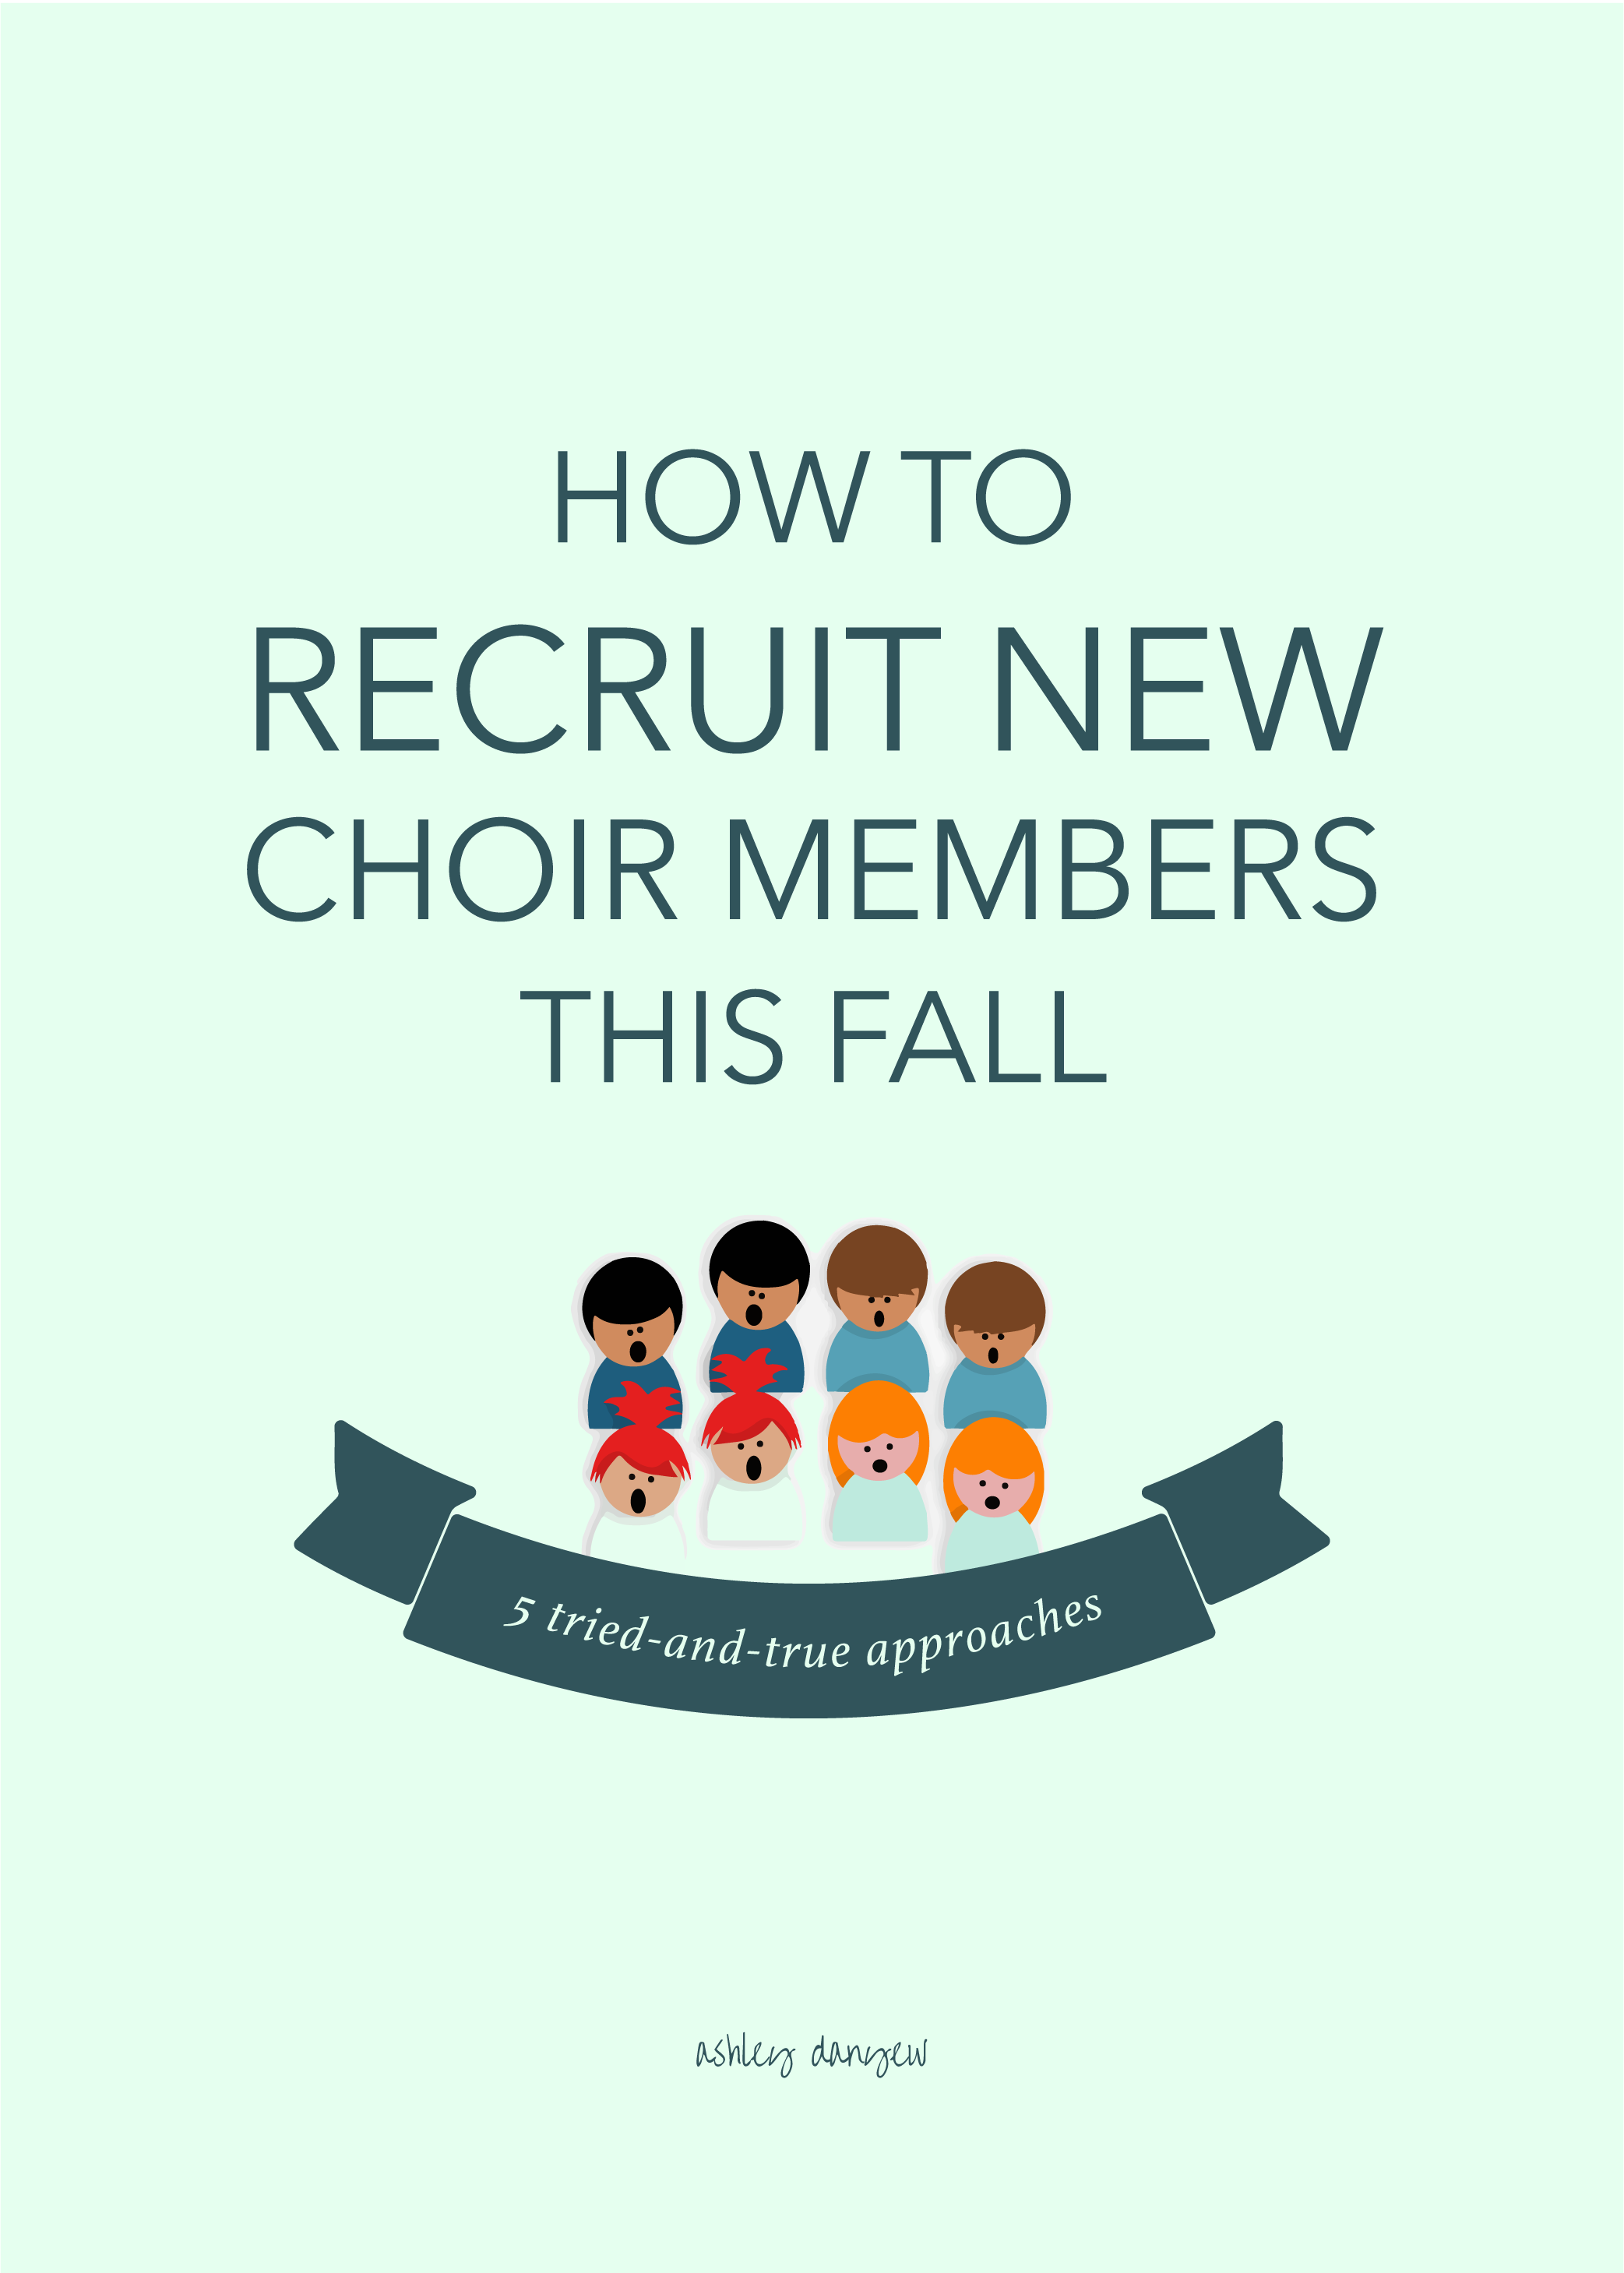 How to Recruit New Choir Members This Fall